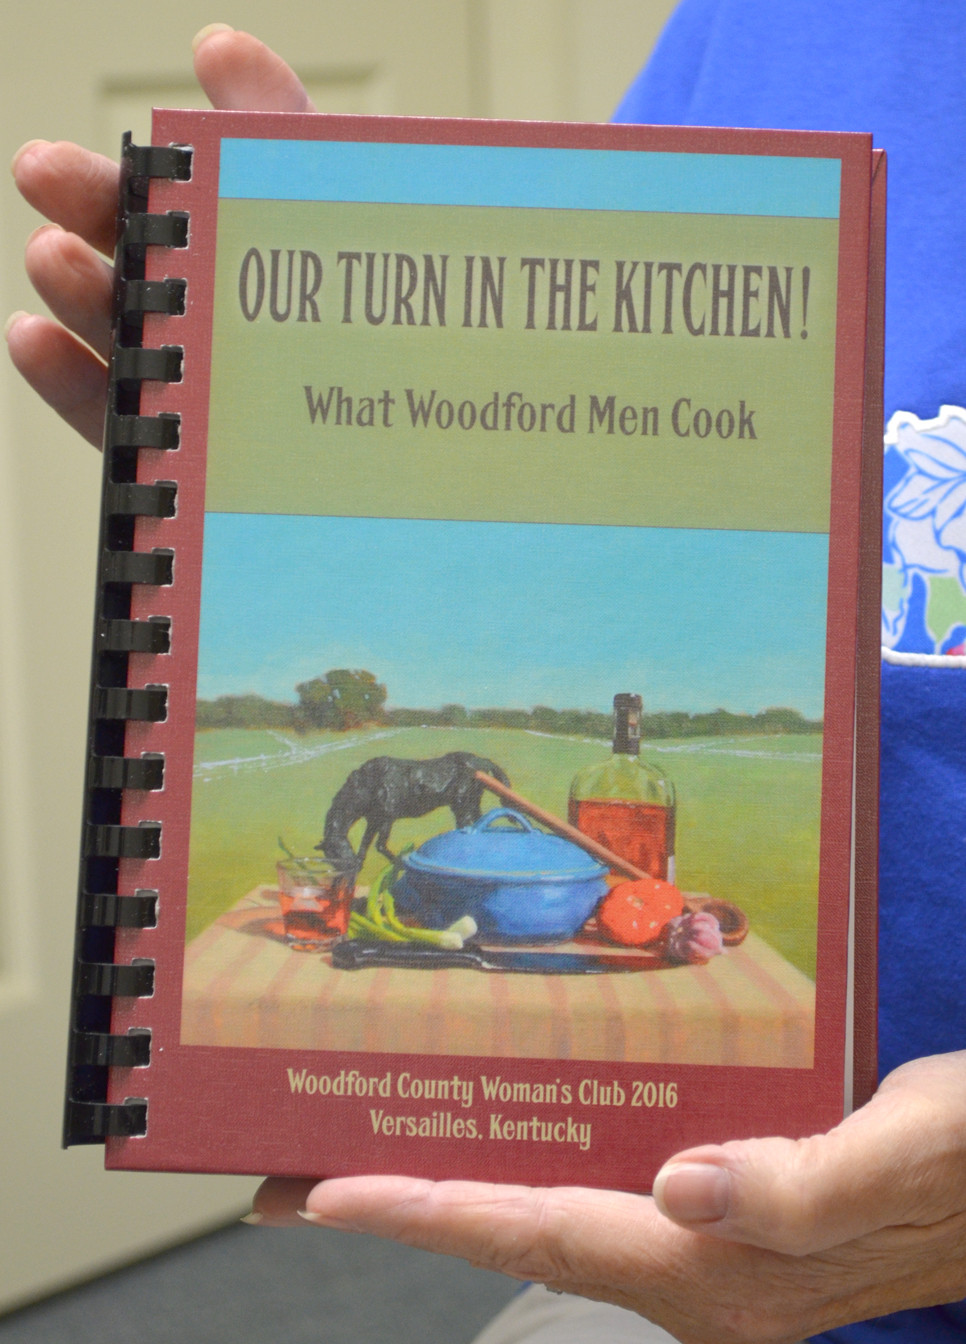 OUR TURN IN THE KITCHEN: What Woodford Men Cook will support next year's Coats and Shoes for Kids, an annual project organized by the Woodford County Woman's Club. (Photo by Bob Vlach)